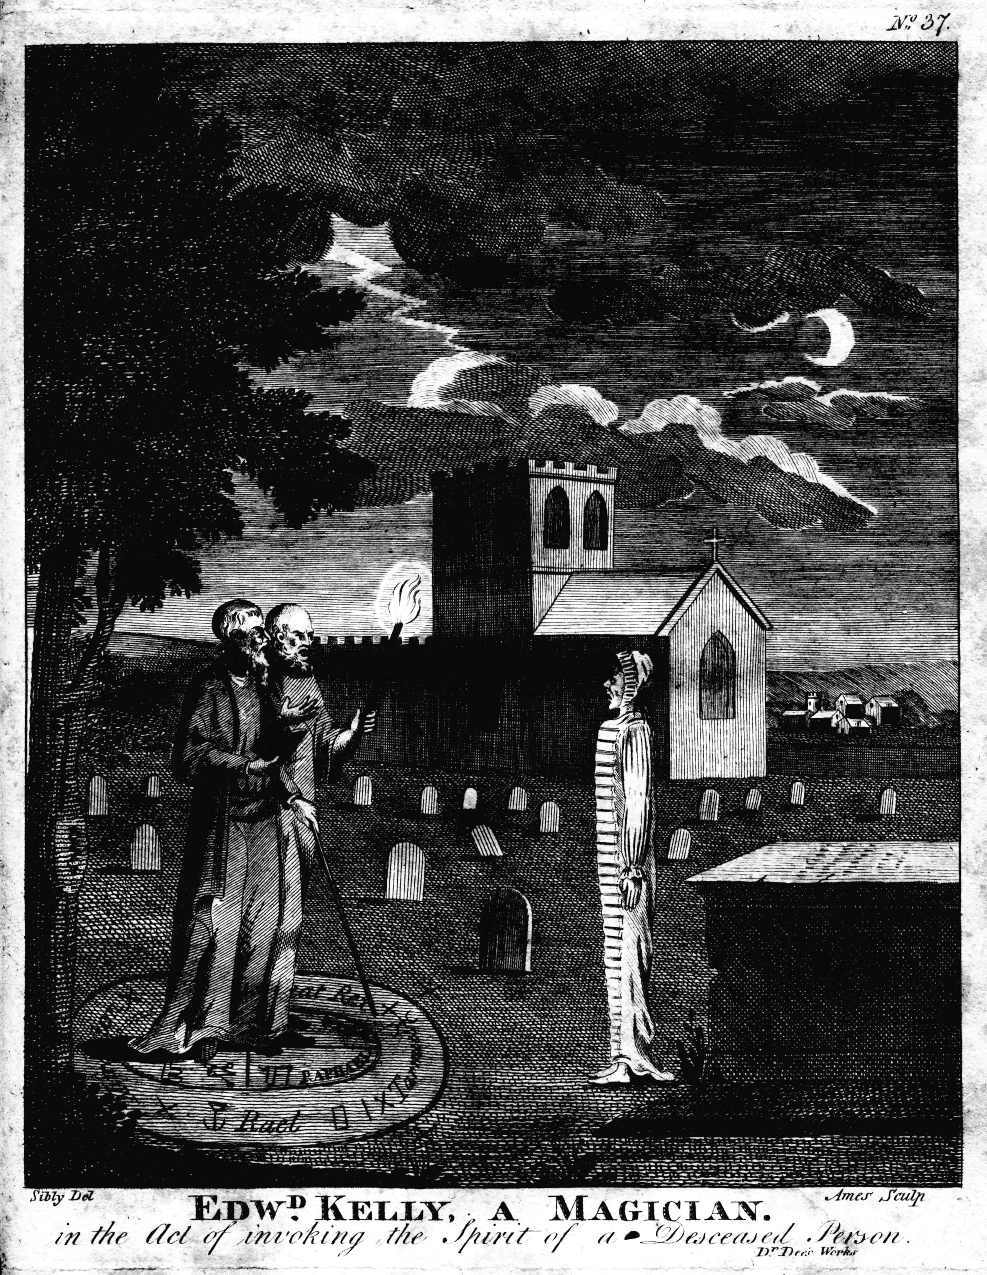 An image of John Dee and Edward Kelly raising spirits